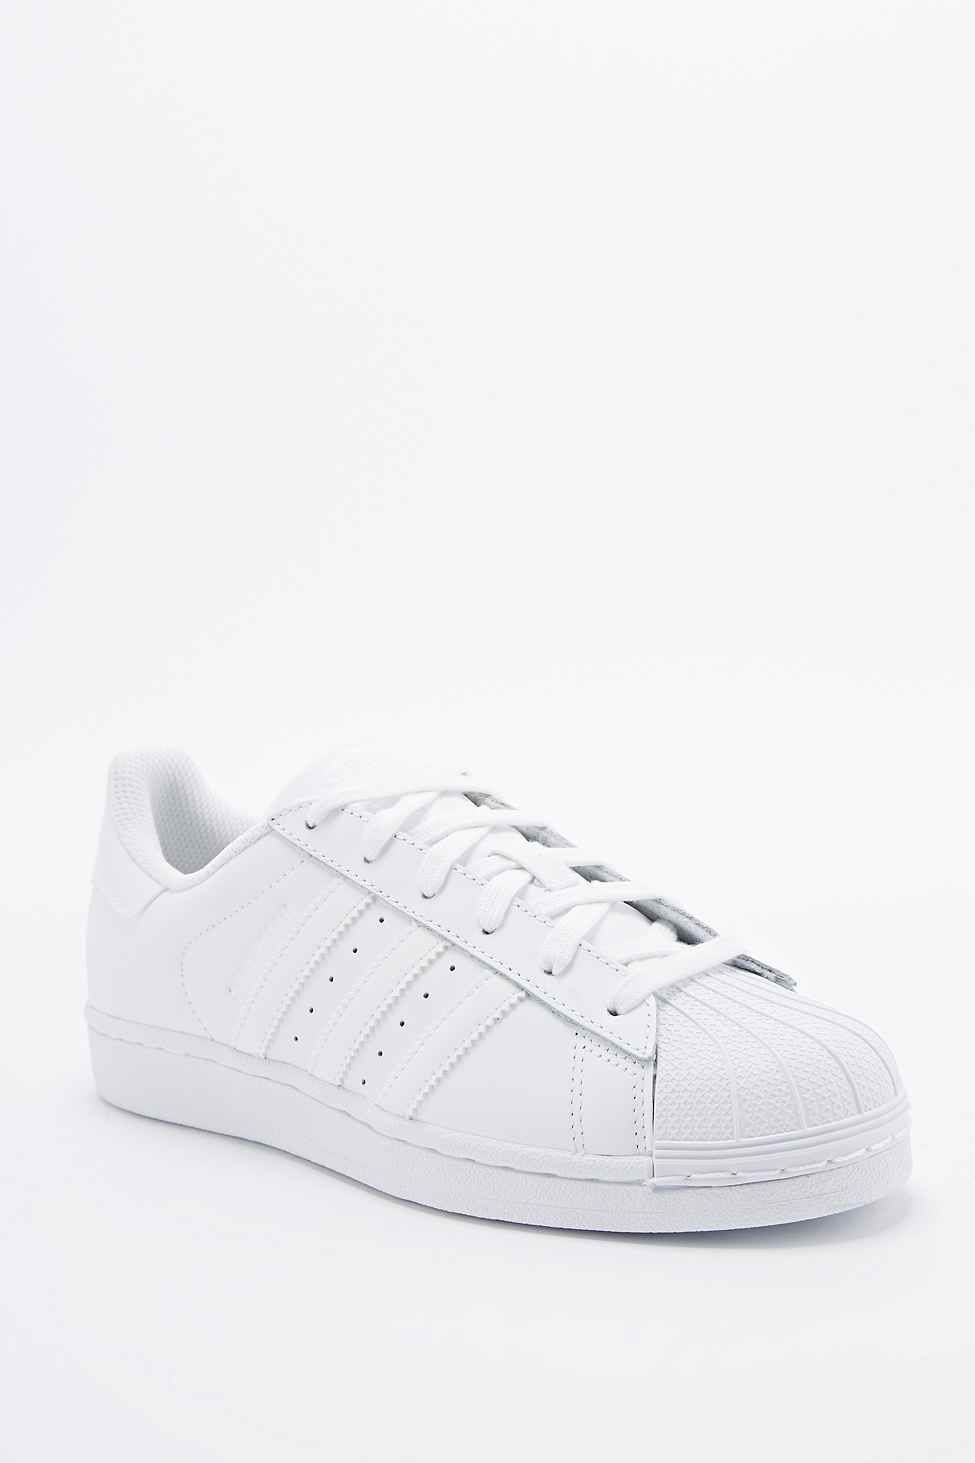 brand new 875cd 38914 Adidas Superstar 80s Trainers in All White